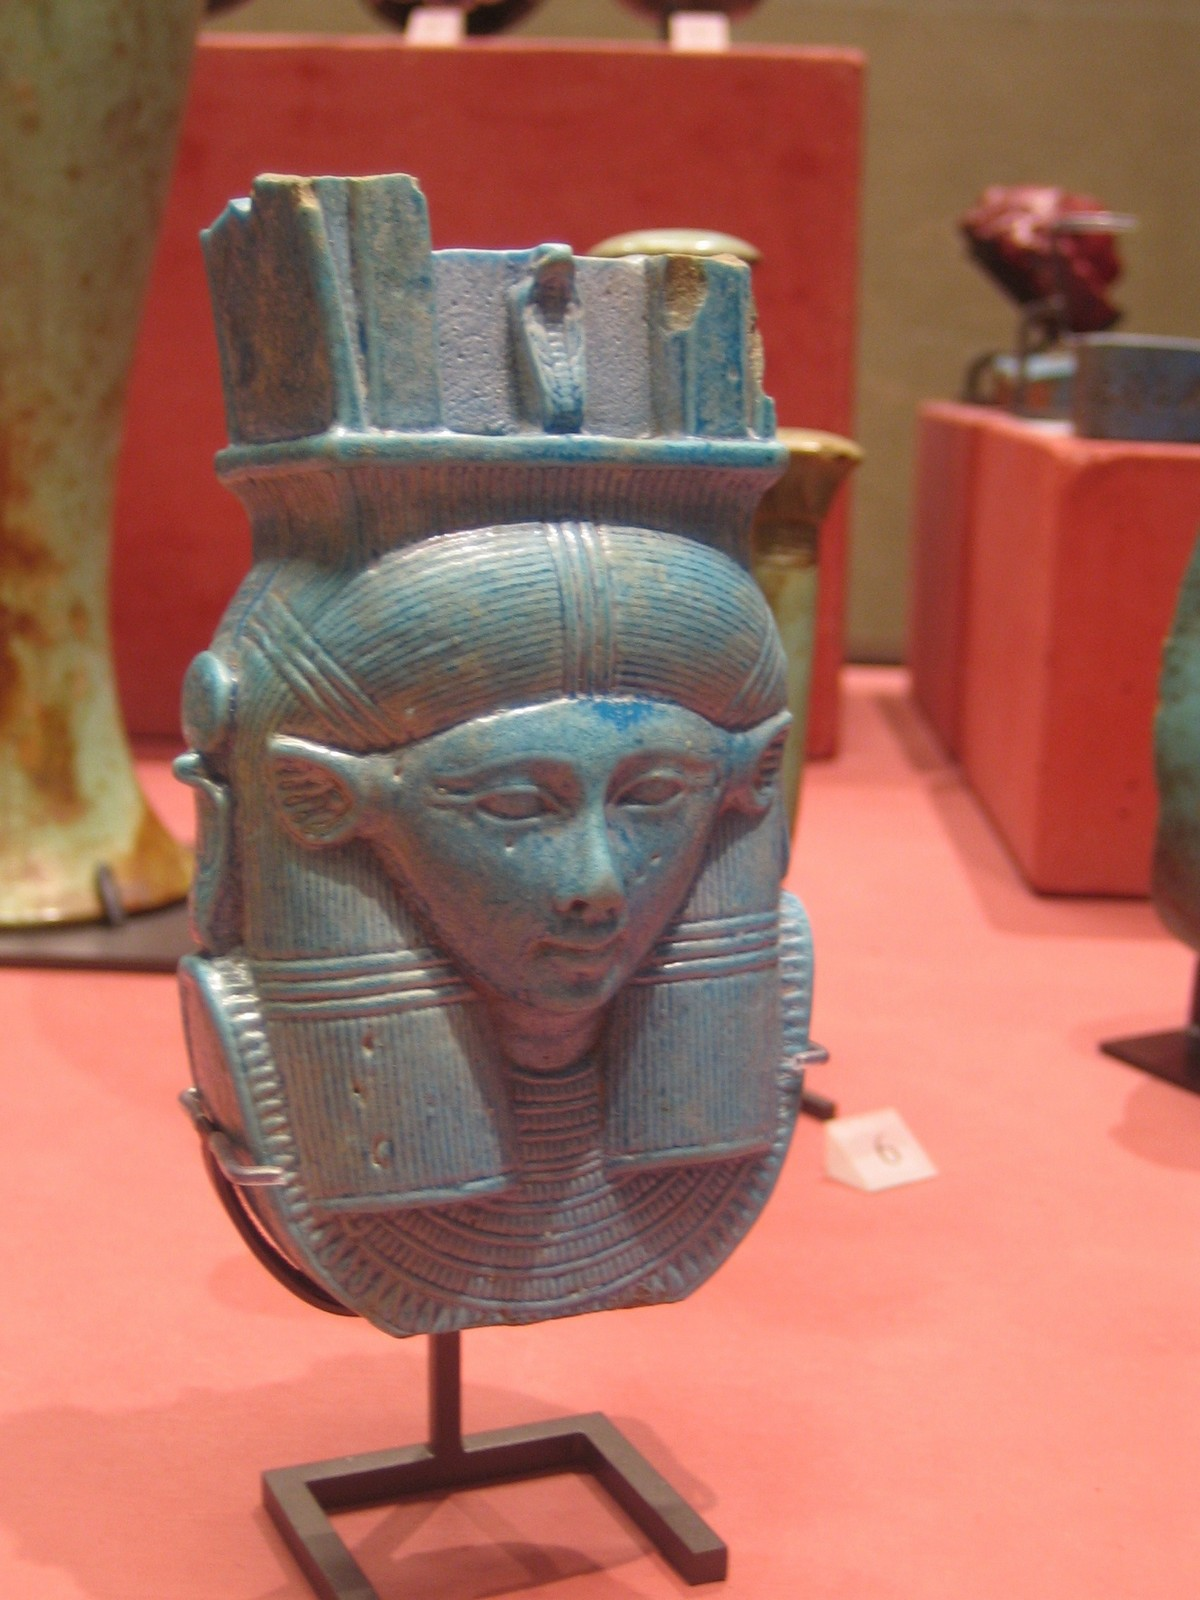 Louvre_egyptos_31.jpg